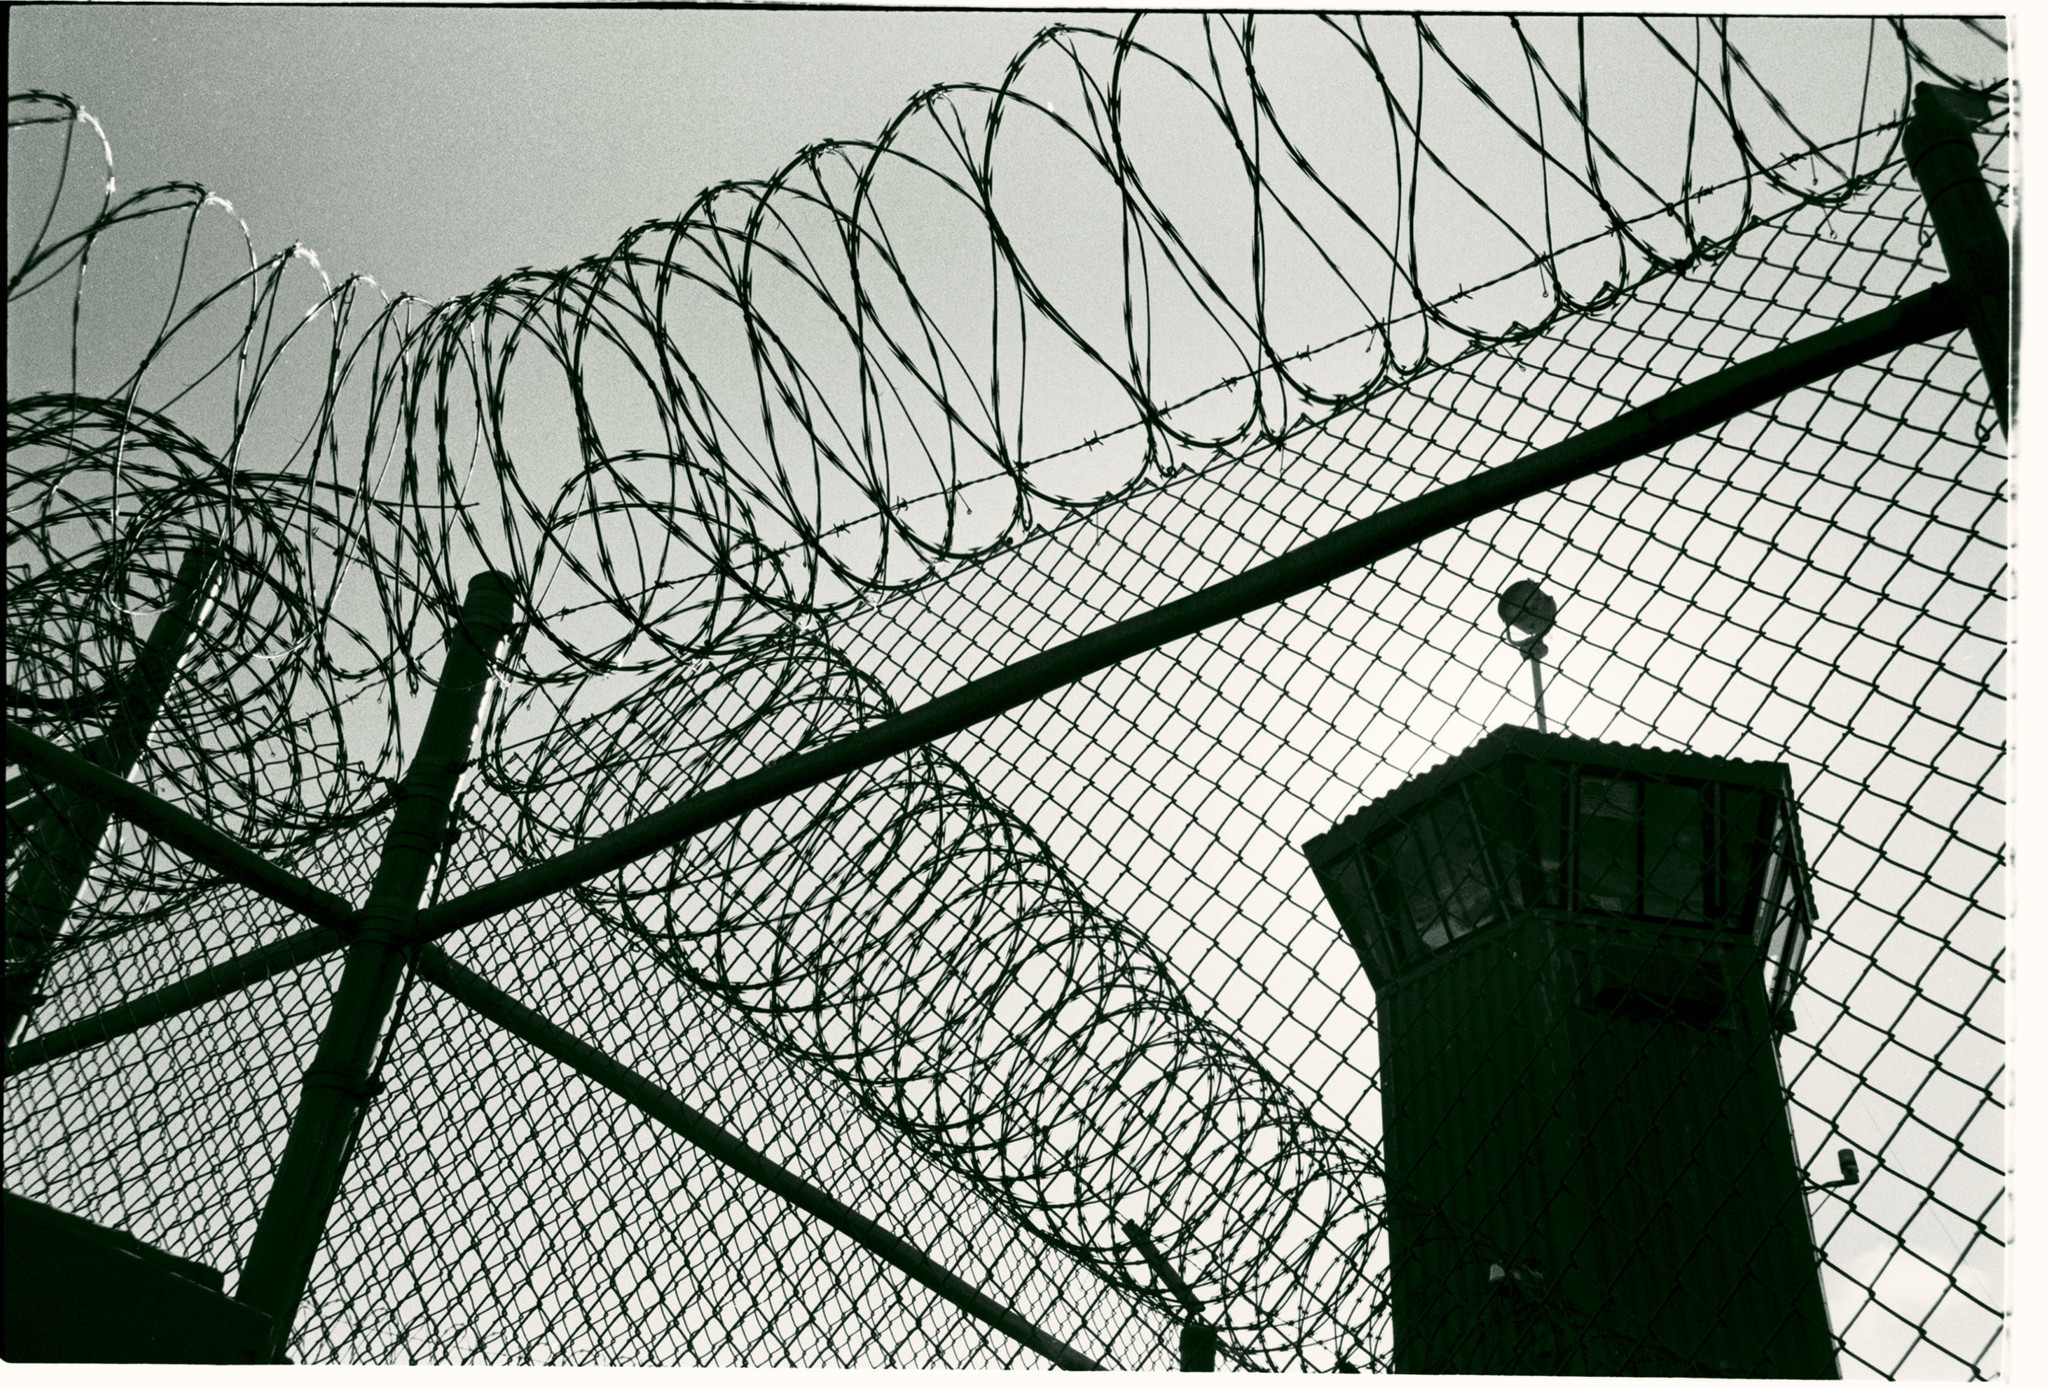 Prison solitary confinement Q&A: What you need to know